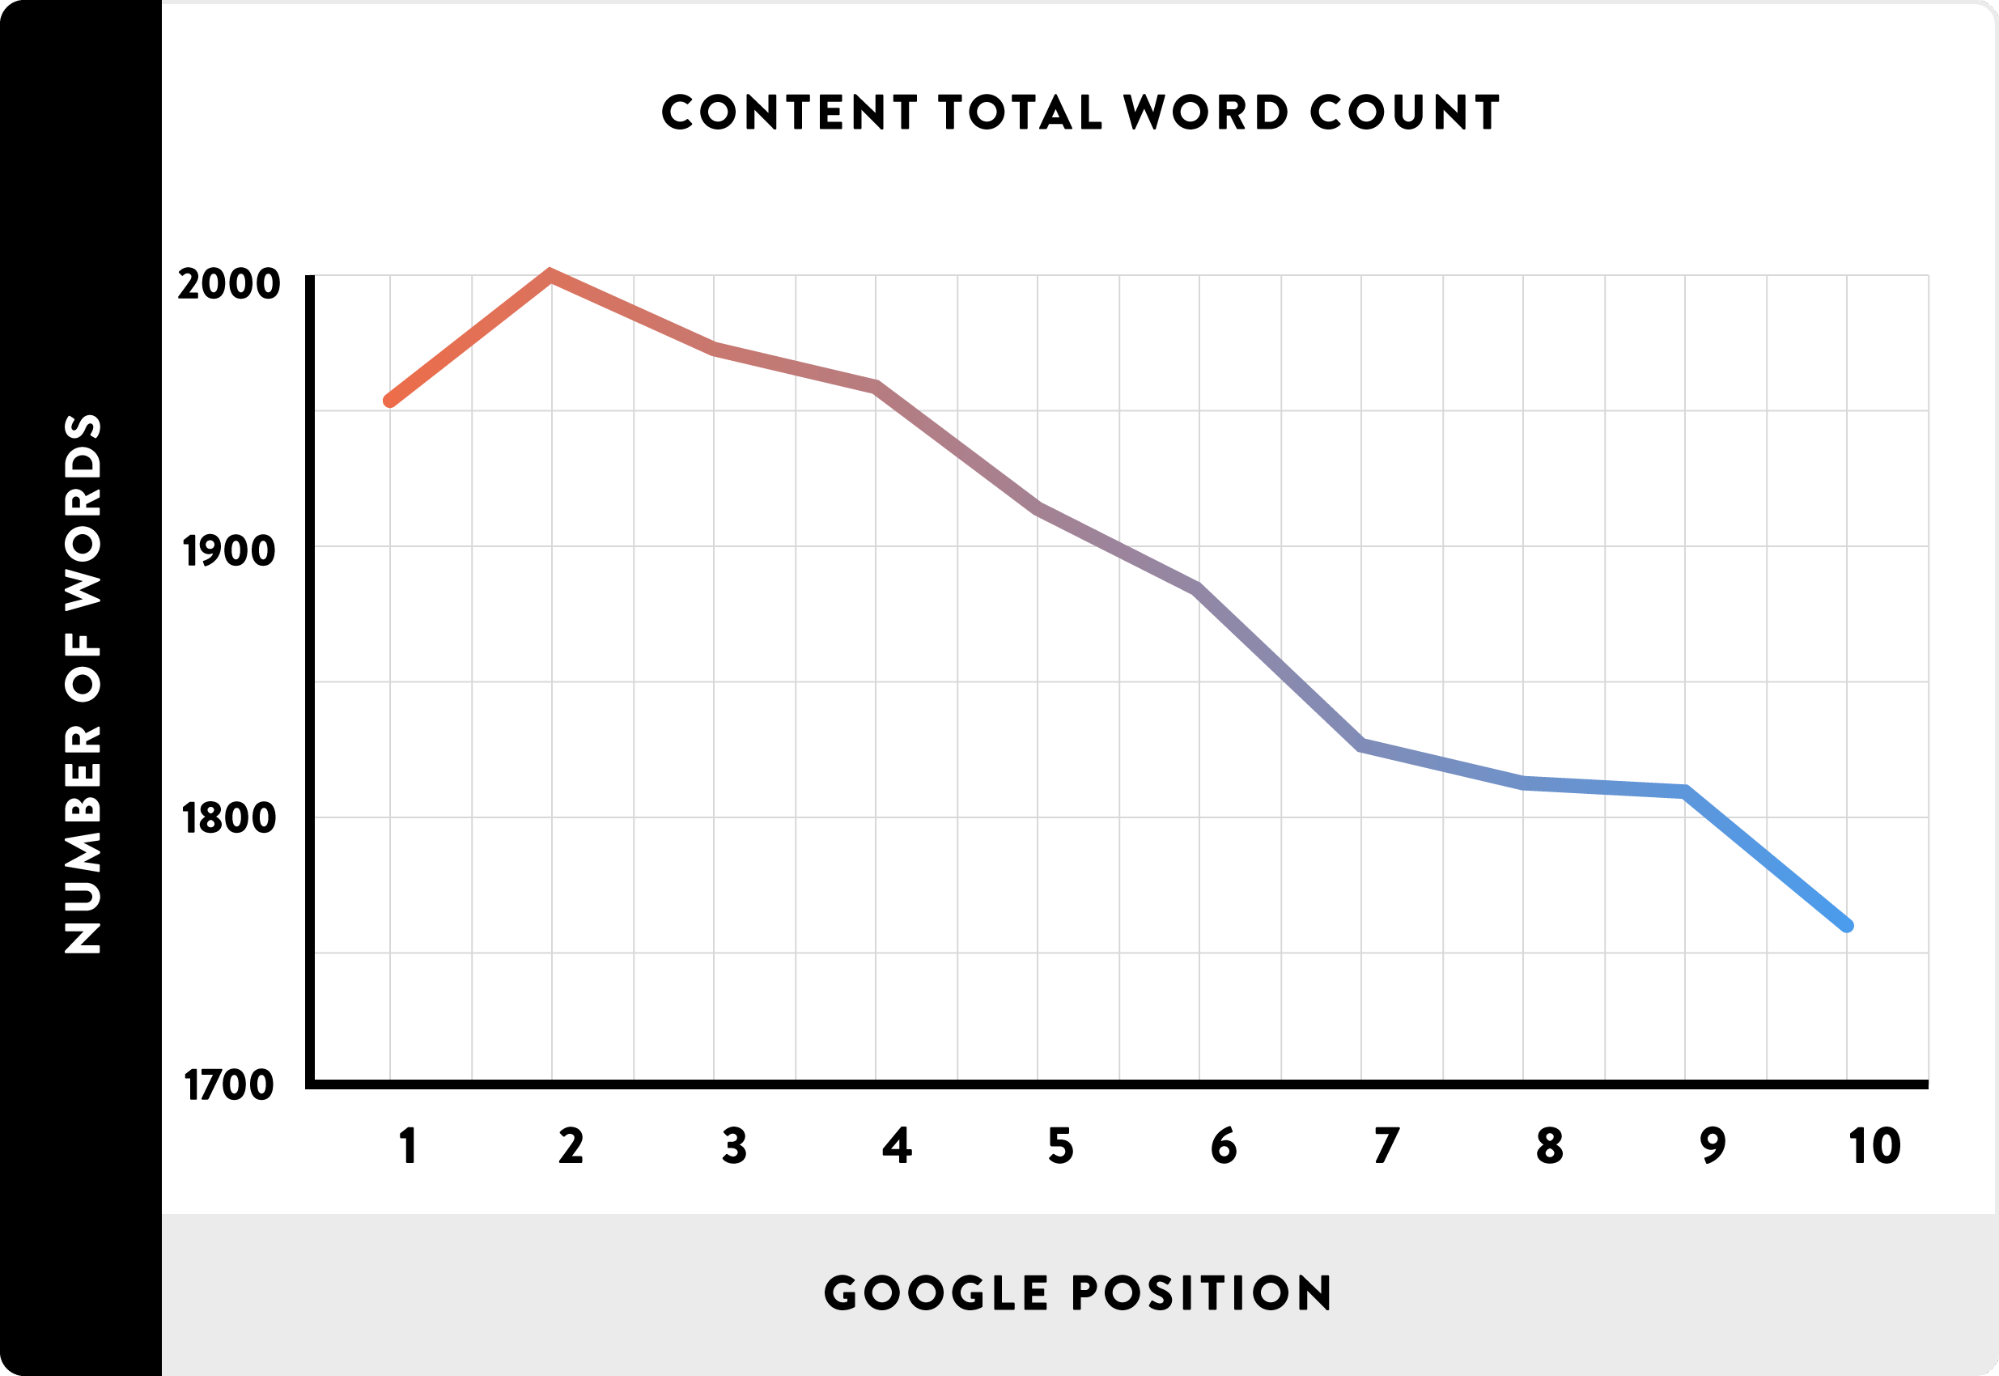 Graph showing information about content total word count and google position